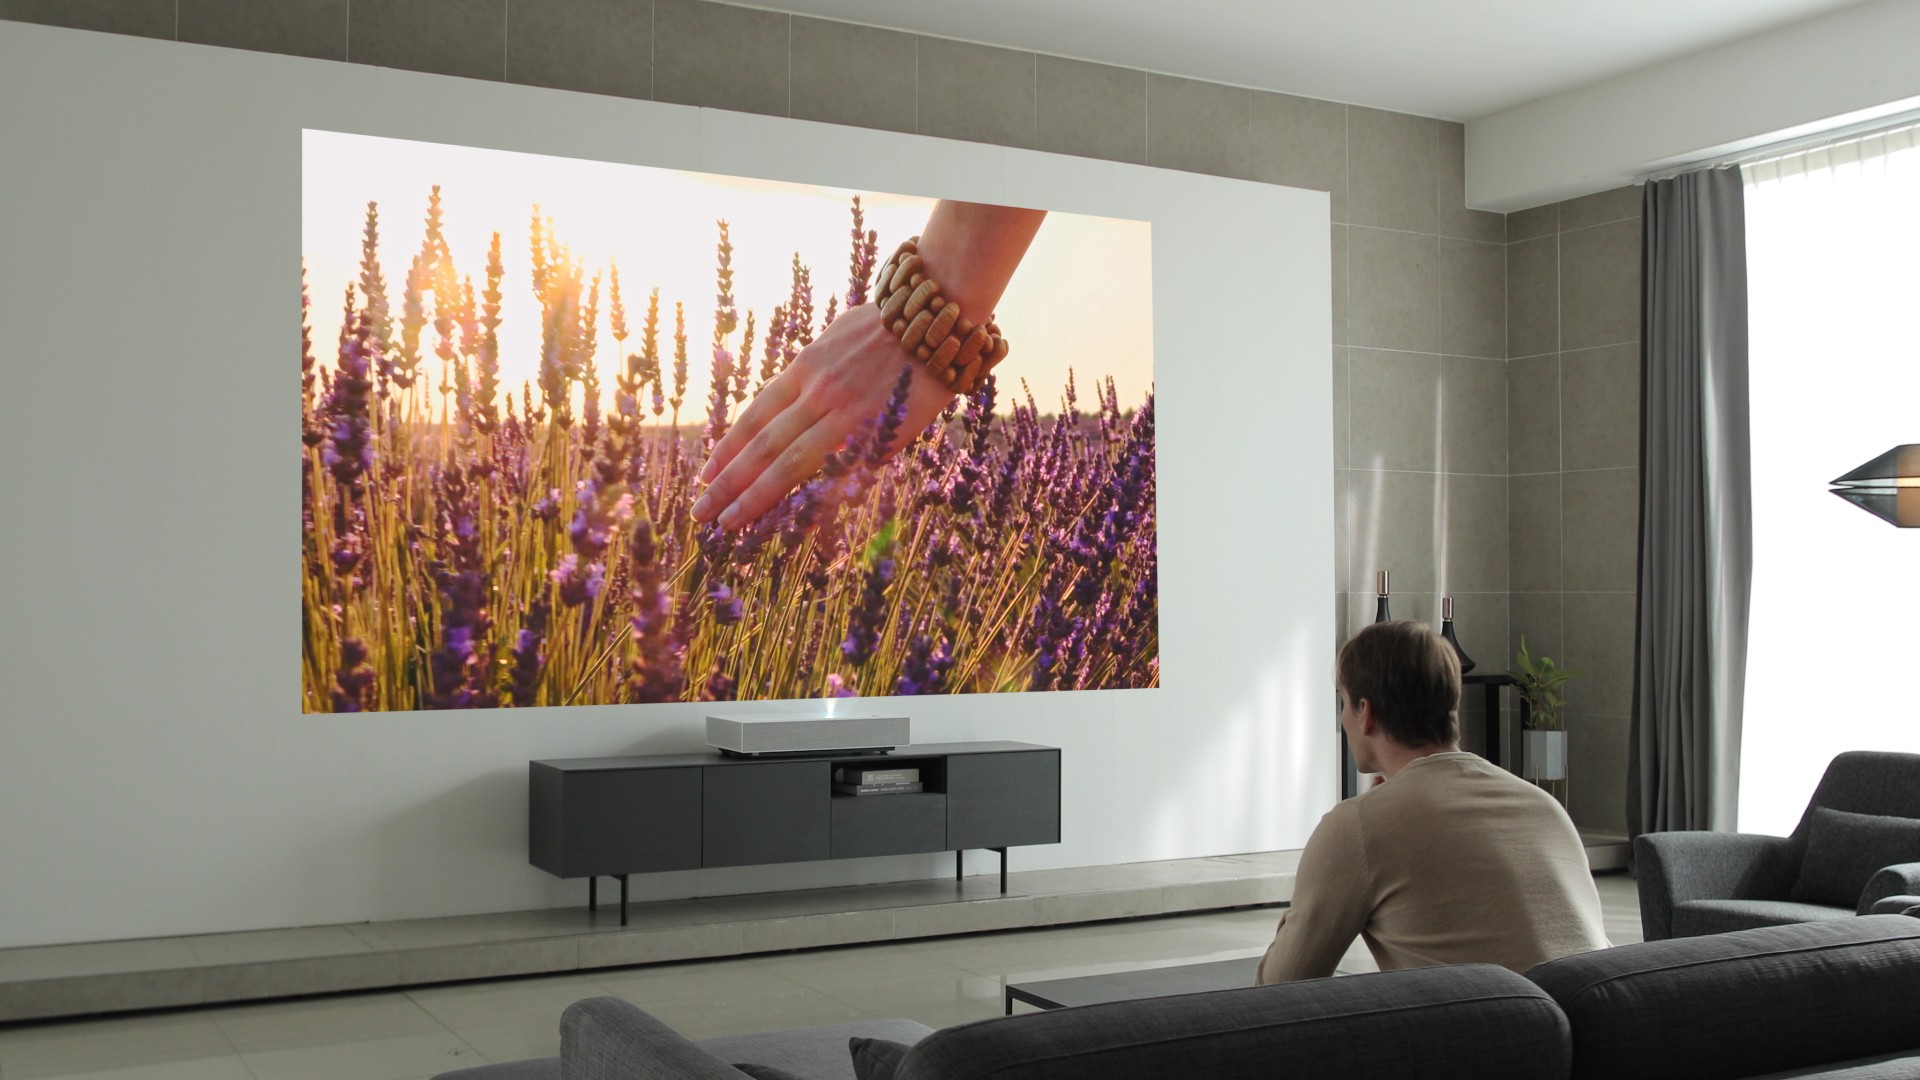 A man is watching a vivid image displayed by the LG CineBeam Laser 4K projector model HU85L